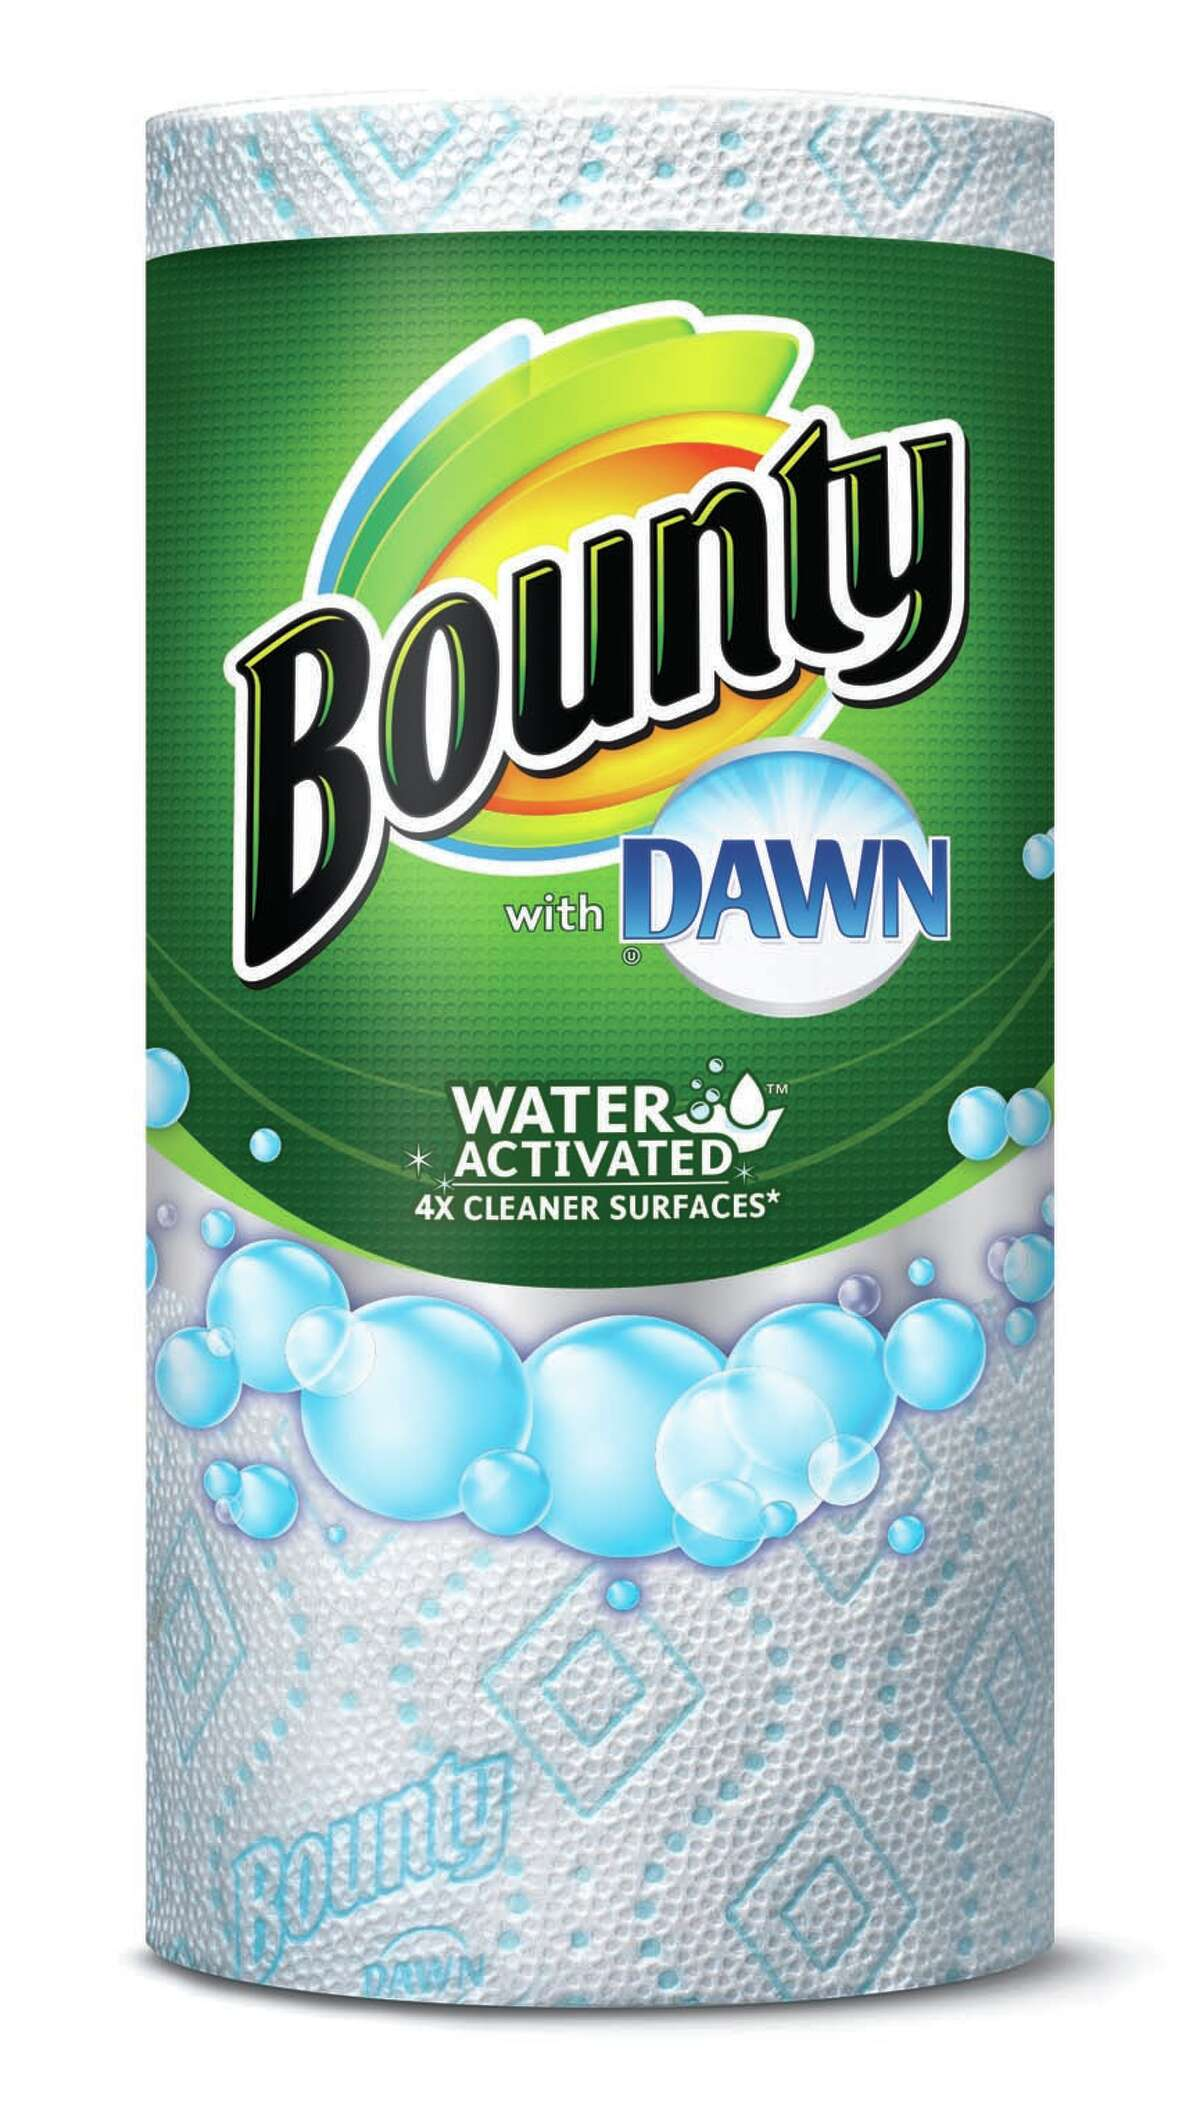 Bounty with Dawn is the new papertowel that features Bounty papertowels infused with dawn dish detergent. (Bounty)